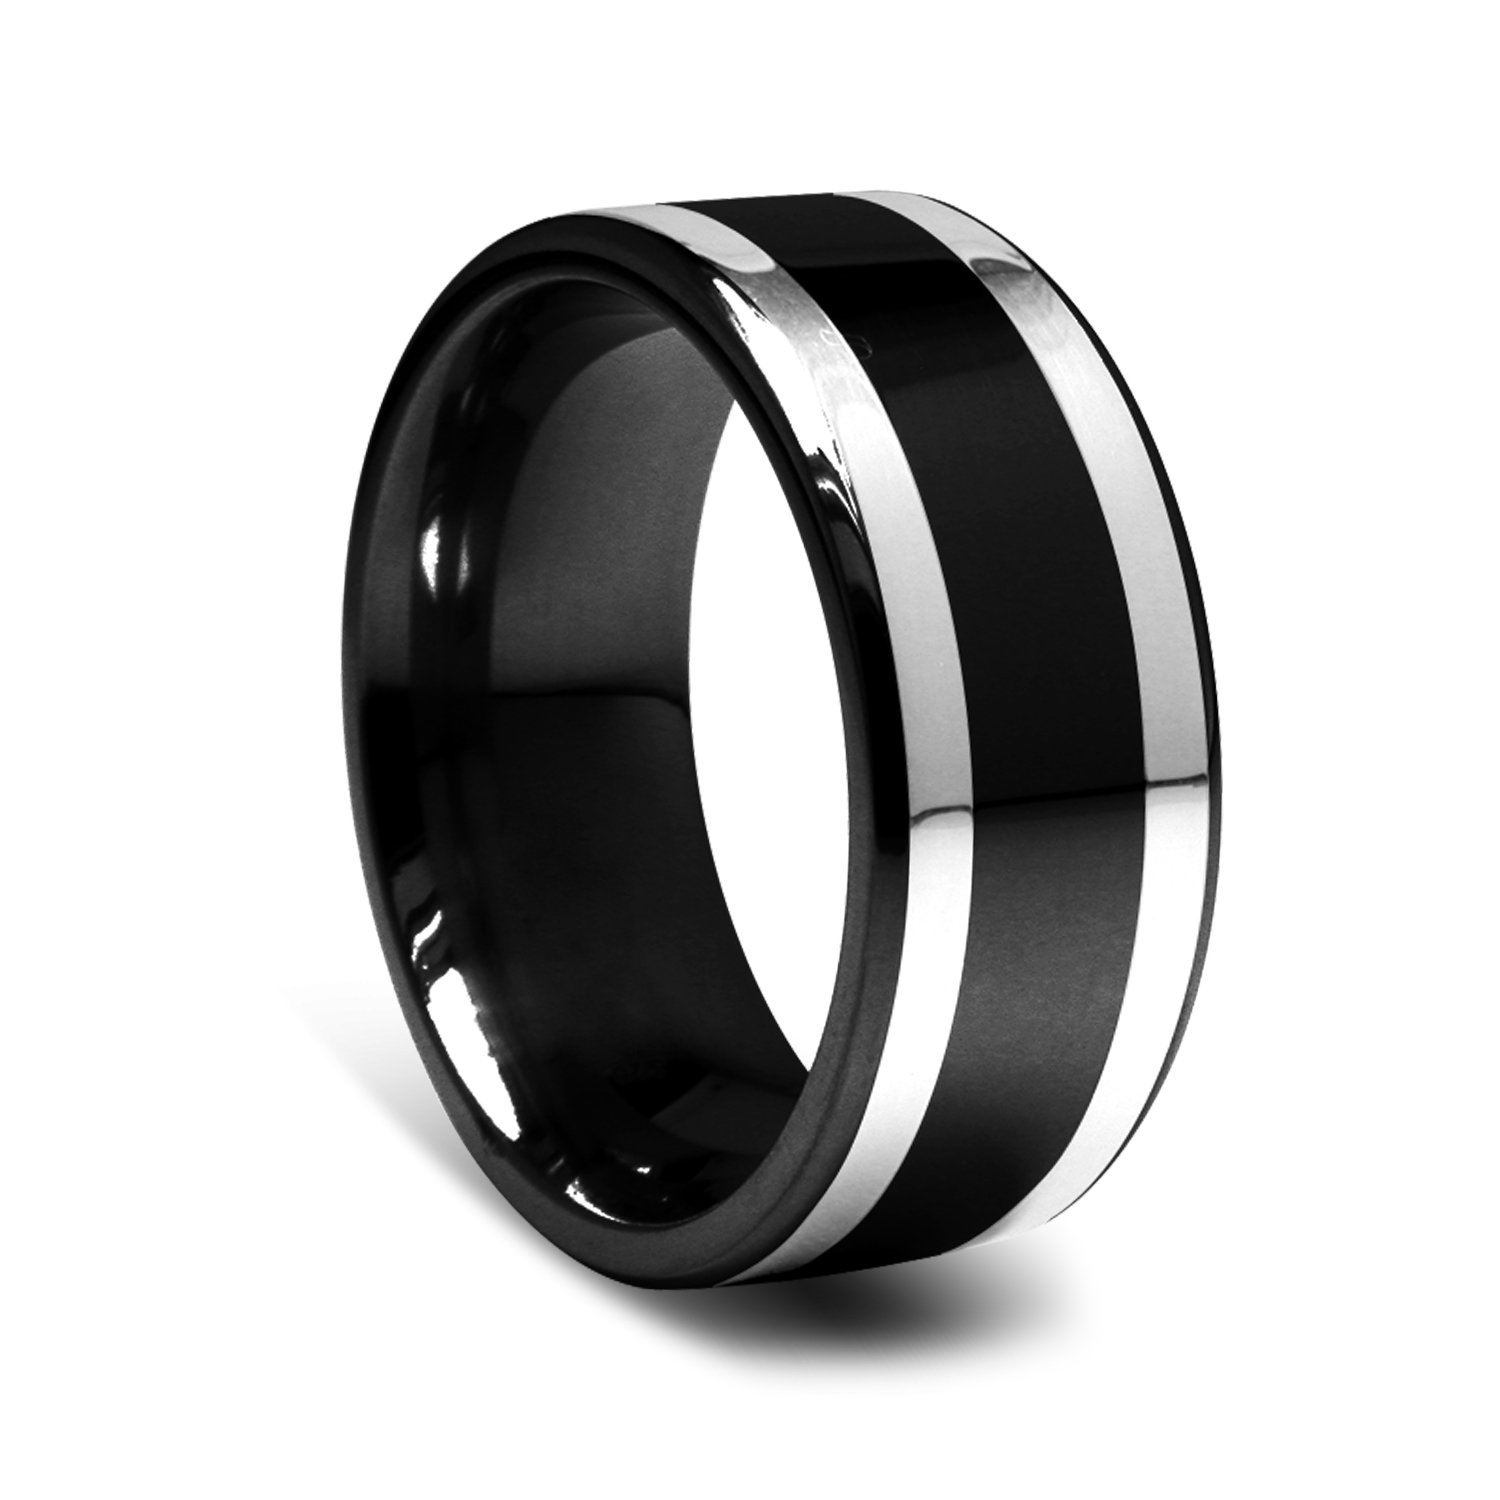 Rings Finger: Mens Engagement Rings Black Titanium Men39;39;s Wedding